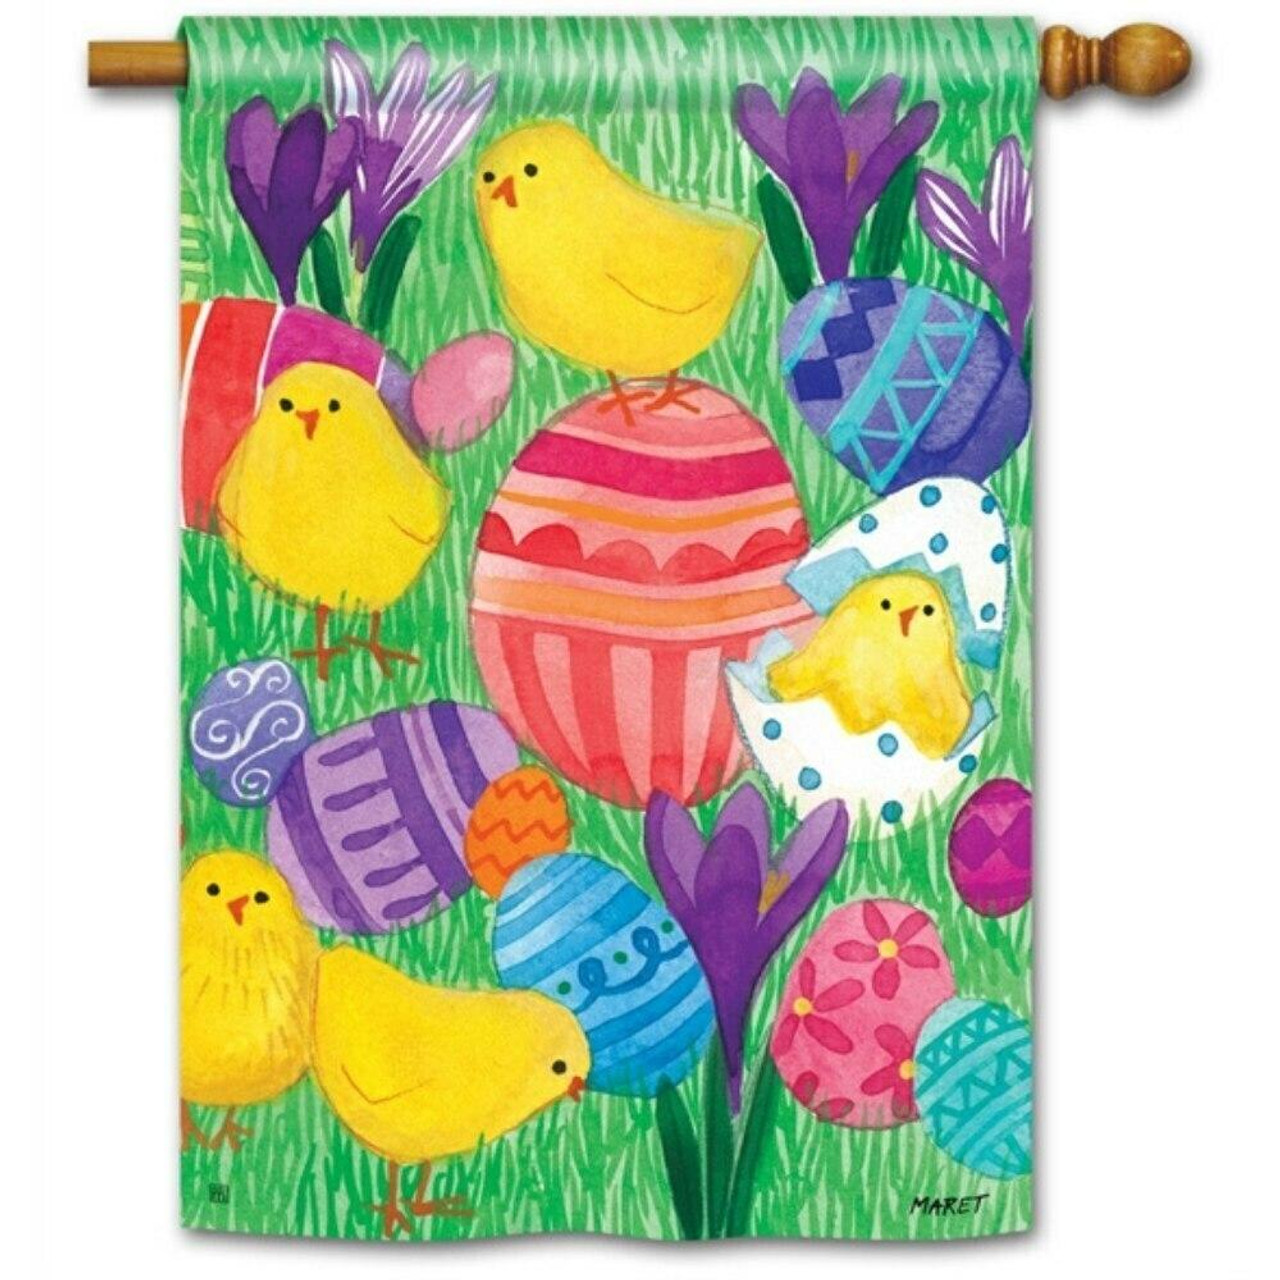 This house flag features green grass as the background with yellow chicks and pink, blue, and purple eggs throughout the design.